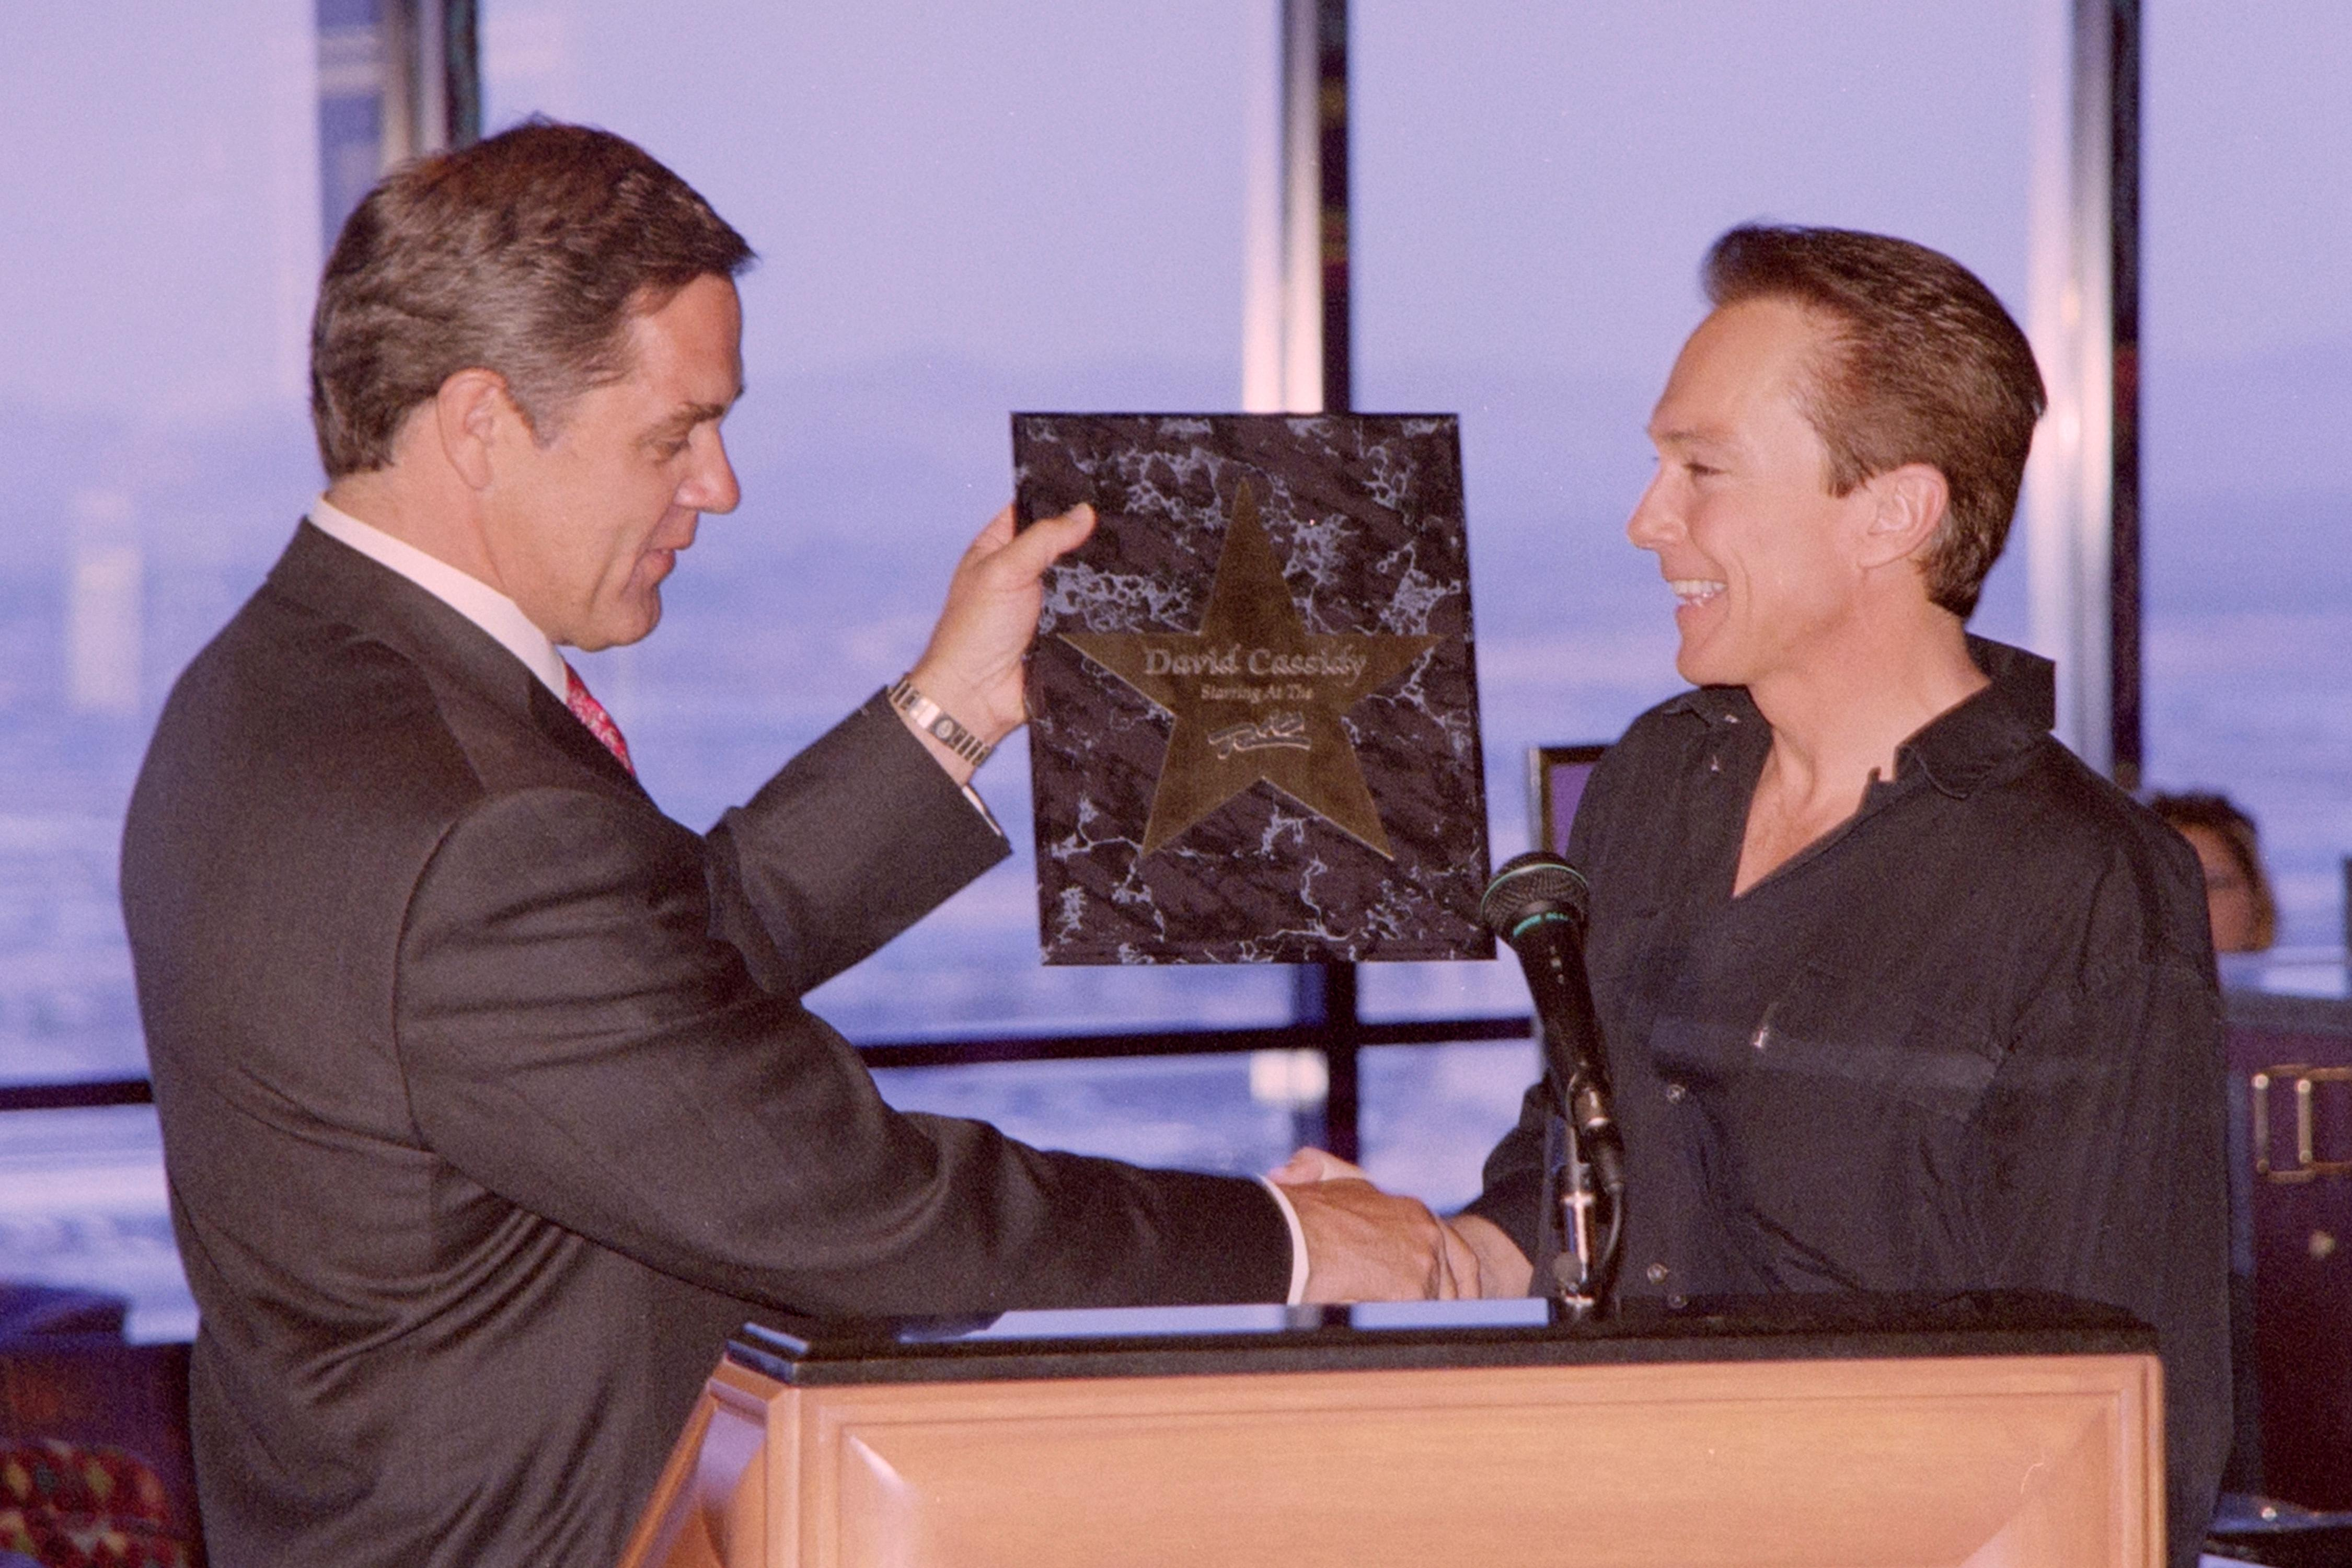 David Cassidy receives a star from the Rio during a news conference July 28, 1999, at the Rio in Las Vegas. [Glenn Pinkerton/Las Vegas News Bureau]